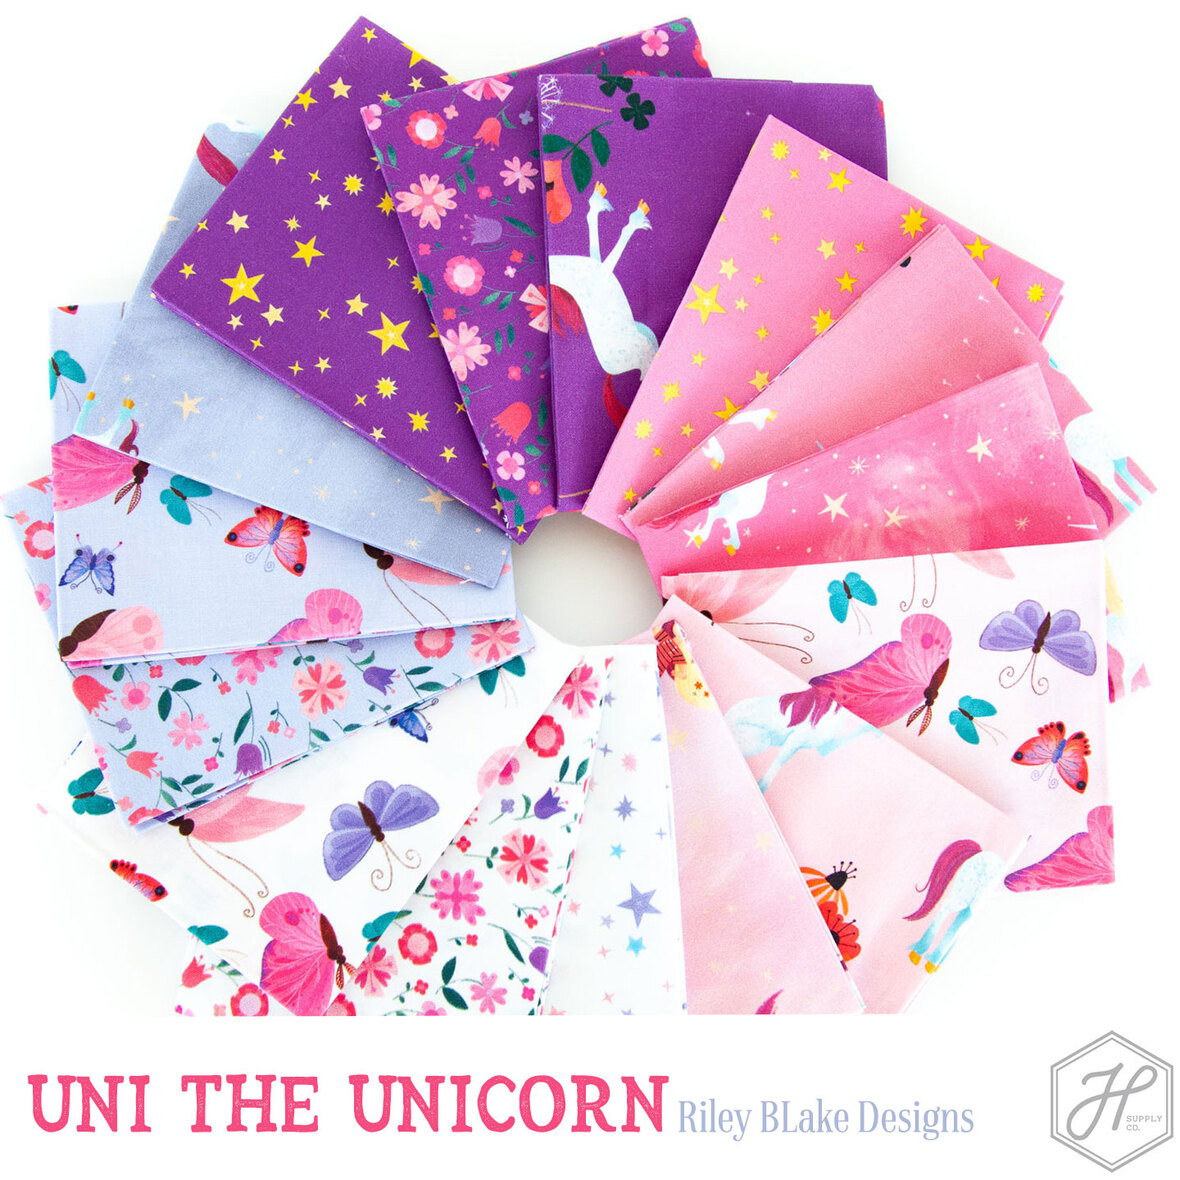 Uni-the-Unicorn-fabric-from-Riley-Blake-at-Hawthorne-Supply-Co.